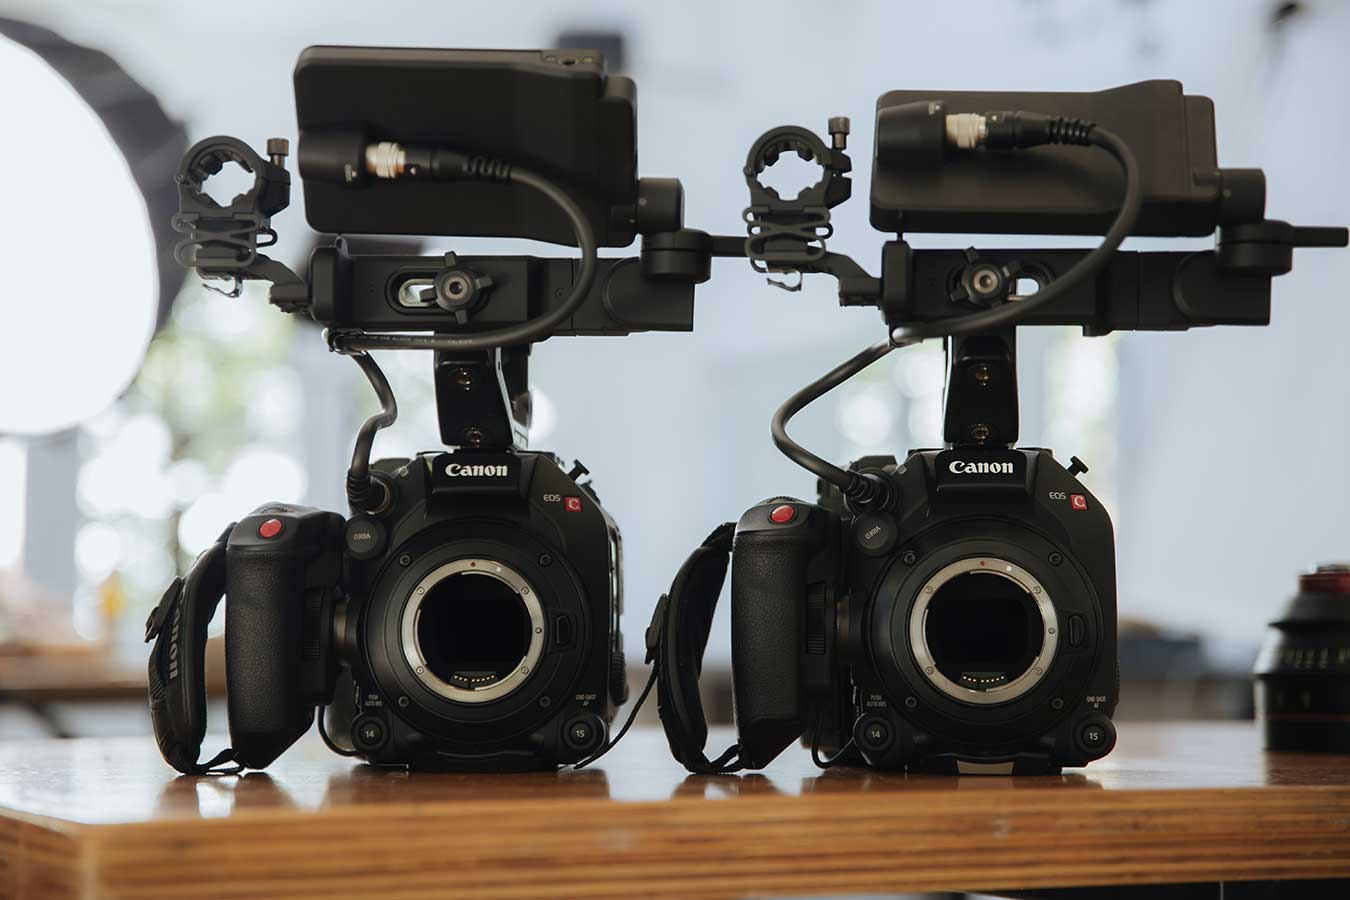 The new Canon C300 Mark III launches today